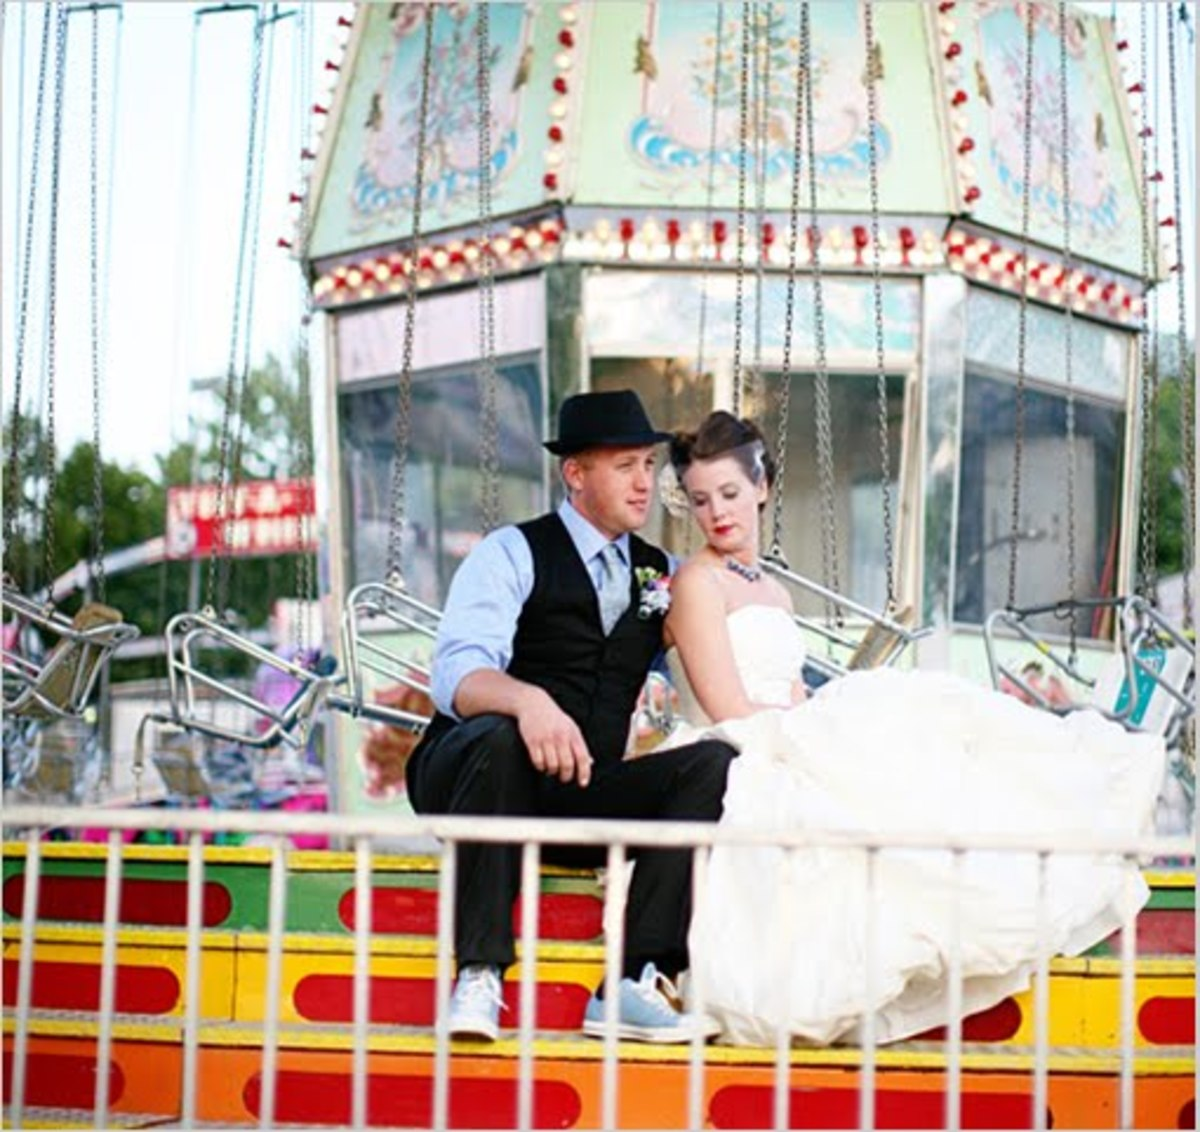 carnival-themed-wedding-fun-with-vintage-rustic-style